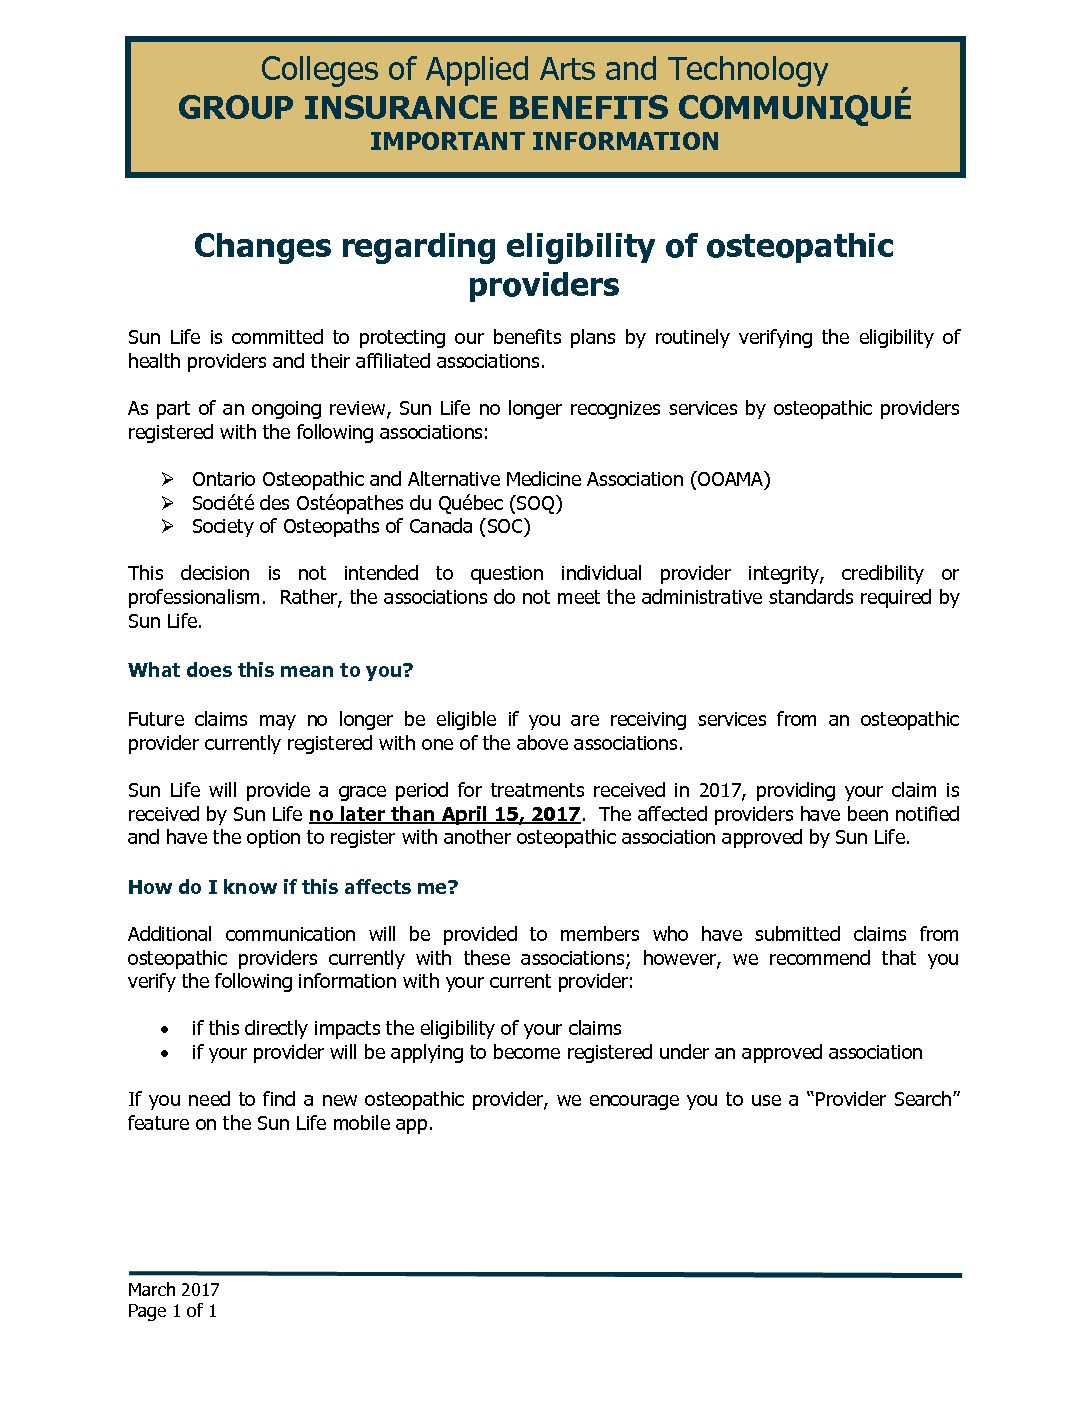 Changes regarding eligibility of osteopathic providers